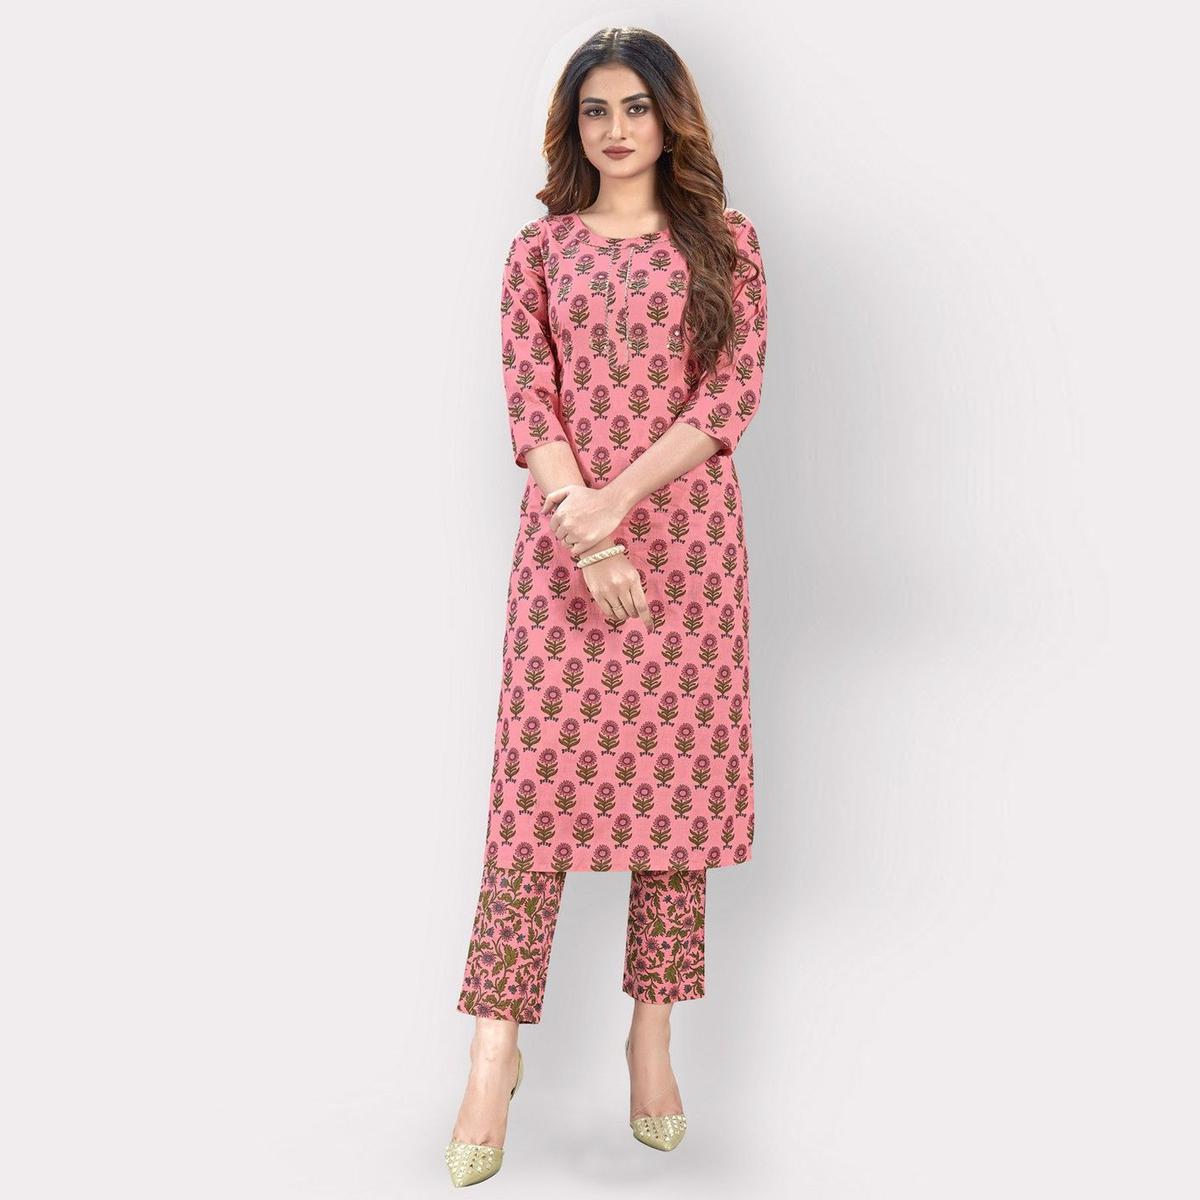 Vbuyz - Women's Pink Colored Flower Printed Straight Cotton Kurti With Pant Set